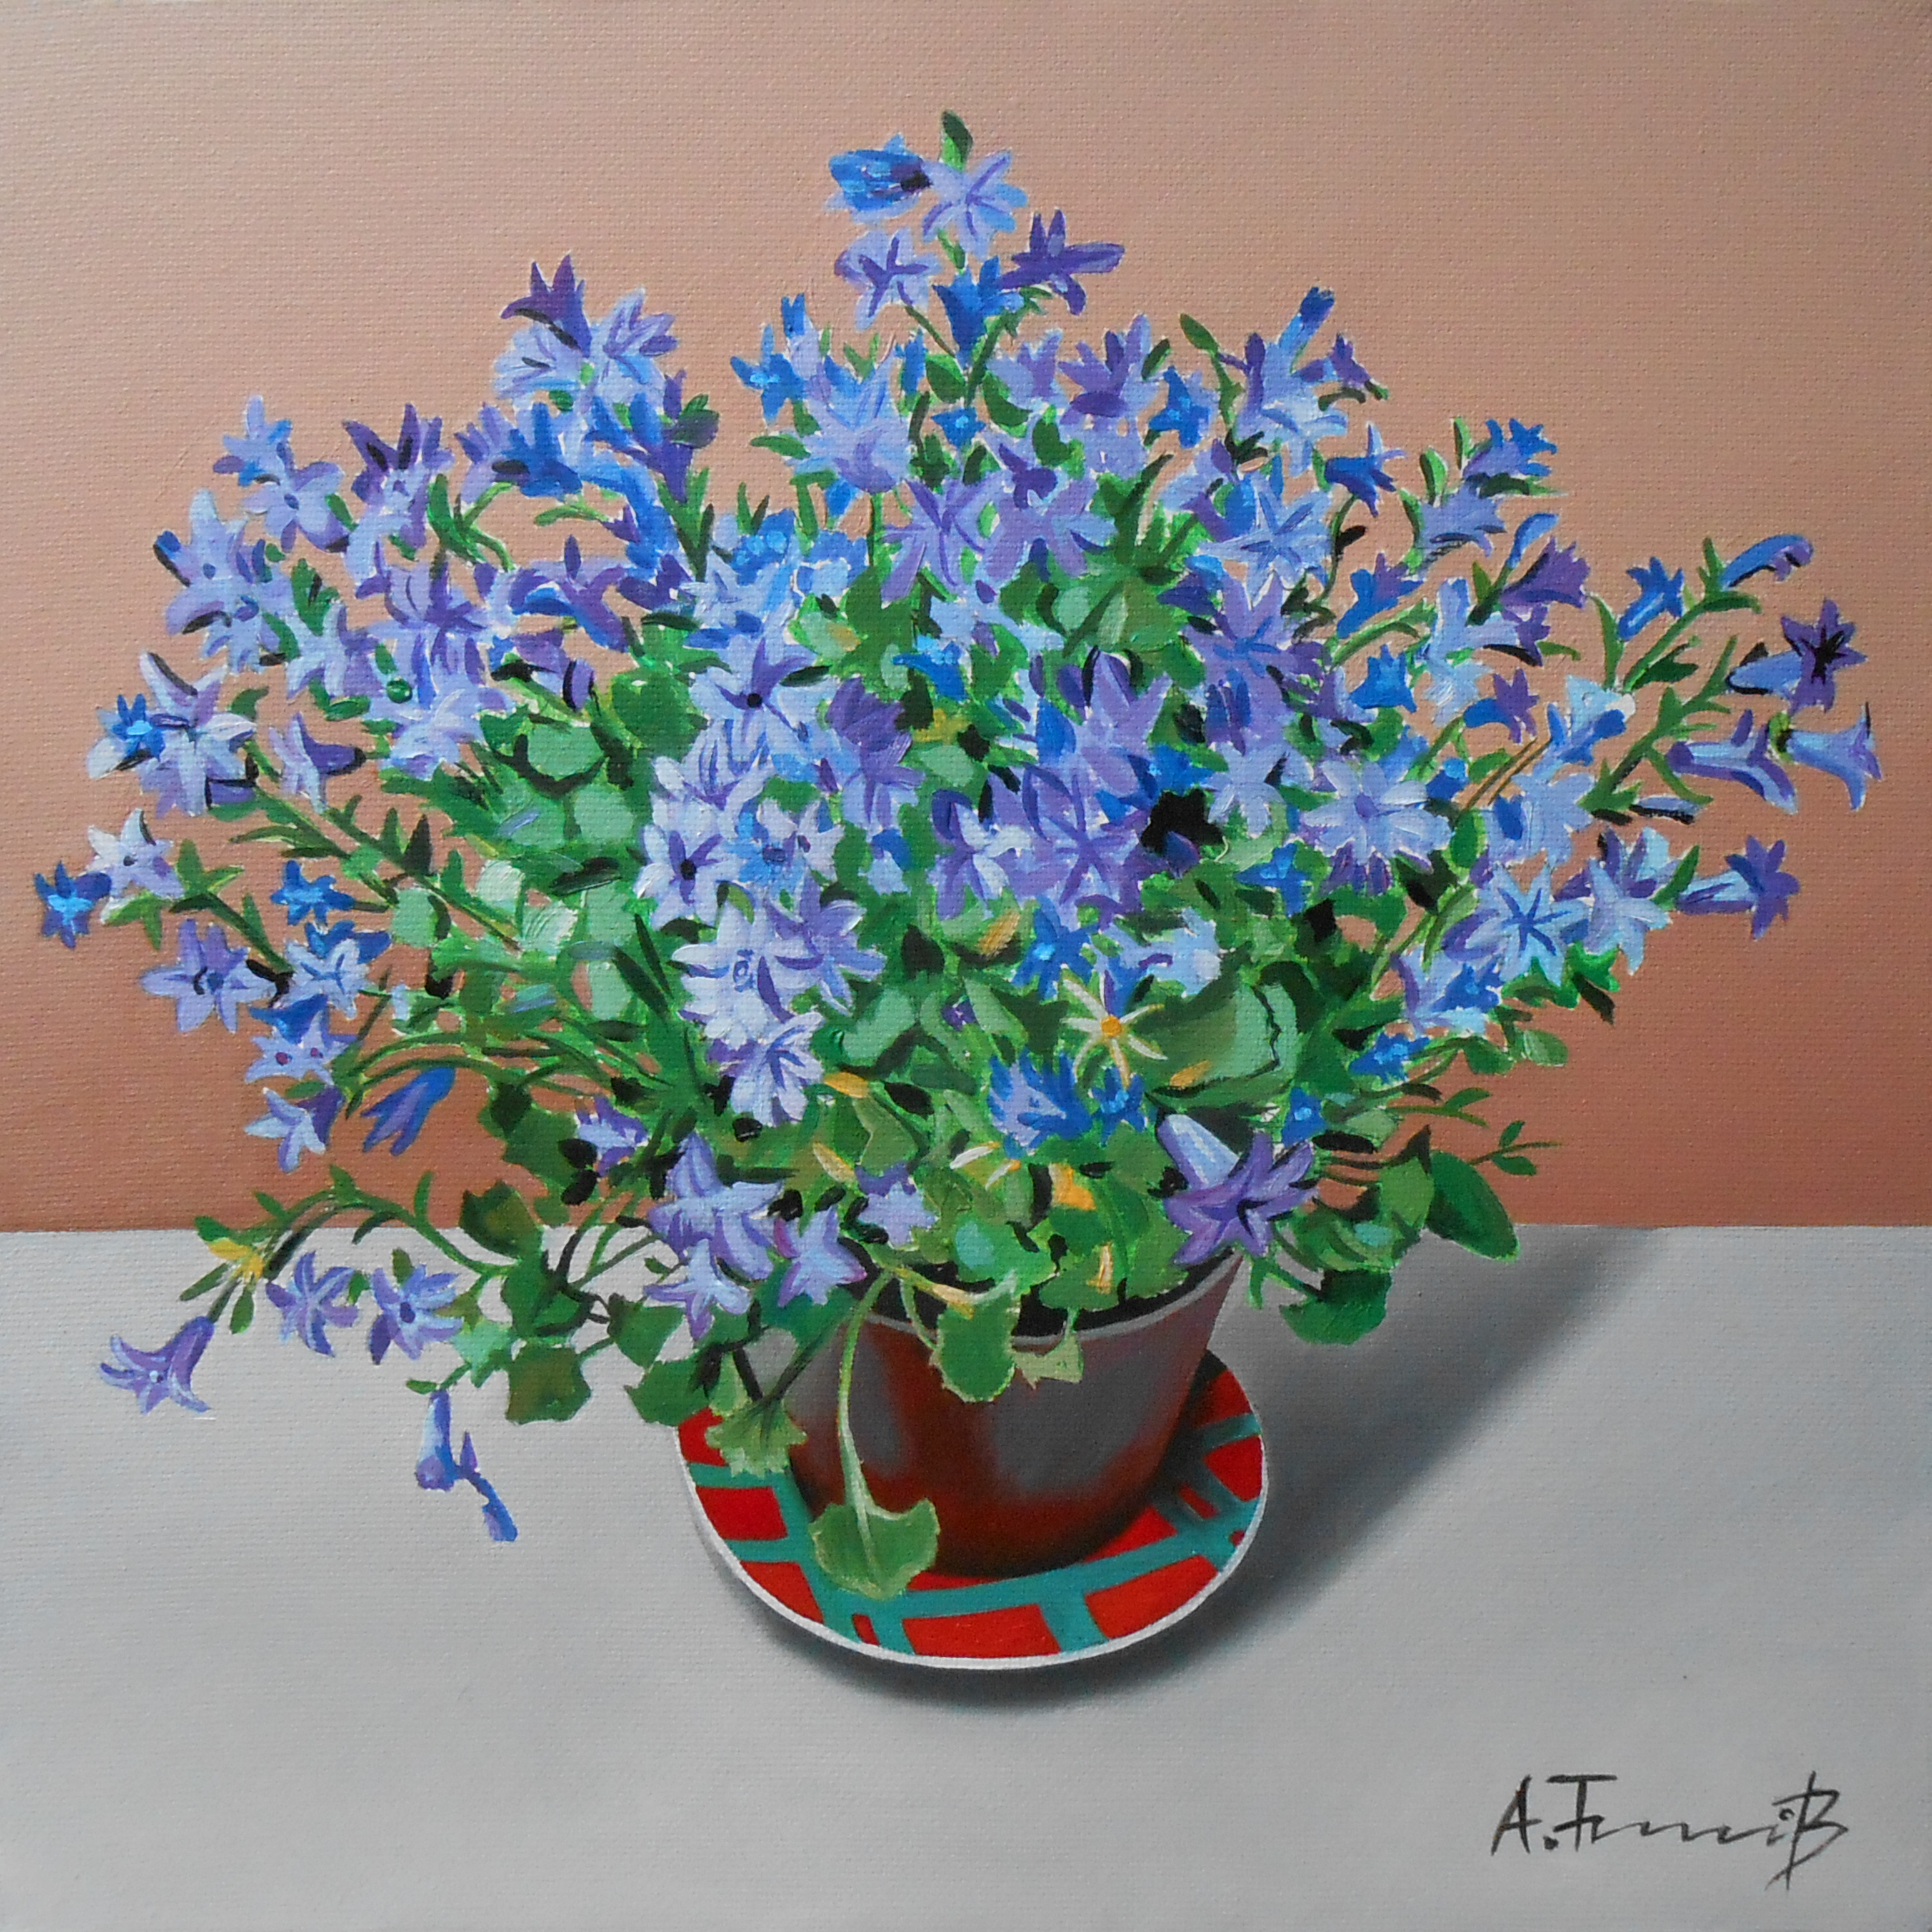 Still Life with Flowers in a Pot